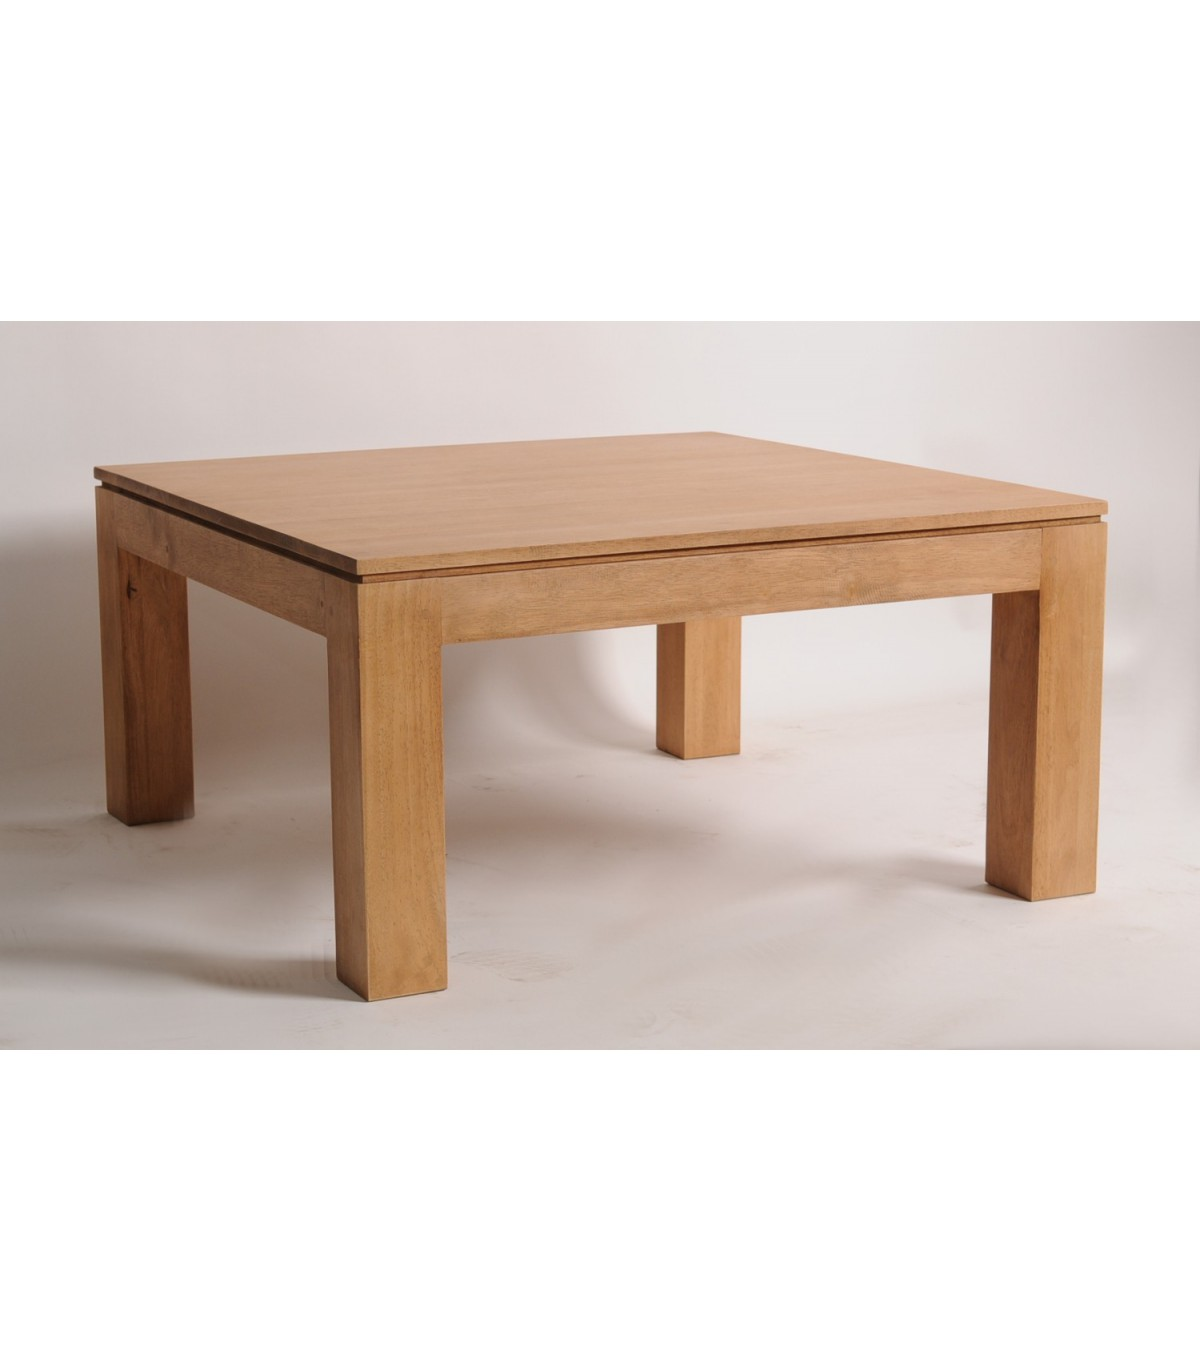 bassecarréboisMEUBLE table bassecarréboisMEUBLE bassecarréboisMEUBLE HEVEAnaturel table HEVEAnaturel table nwOP0k